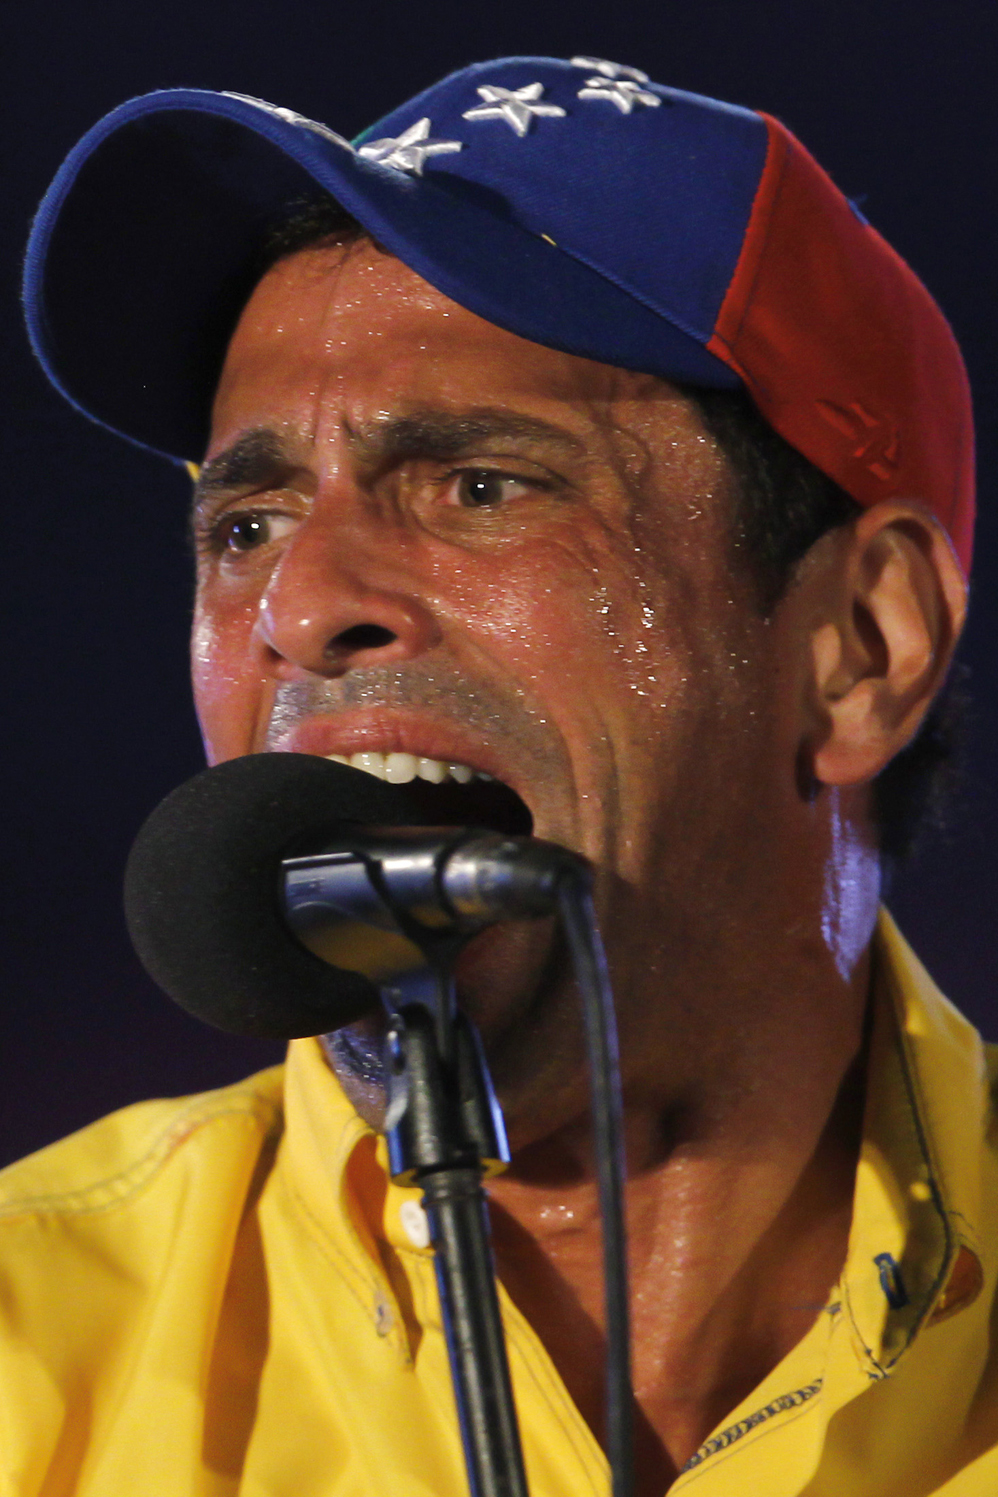 Venezuela's opposition leader and presidential candidate Capriles speaks to supporters during a campaign rally in the state of Lara